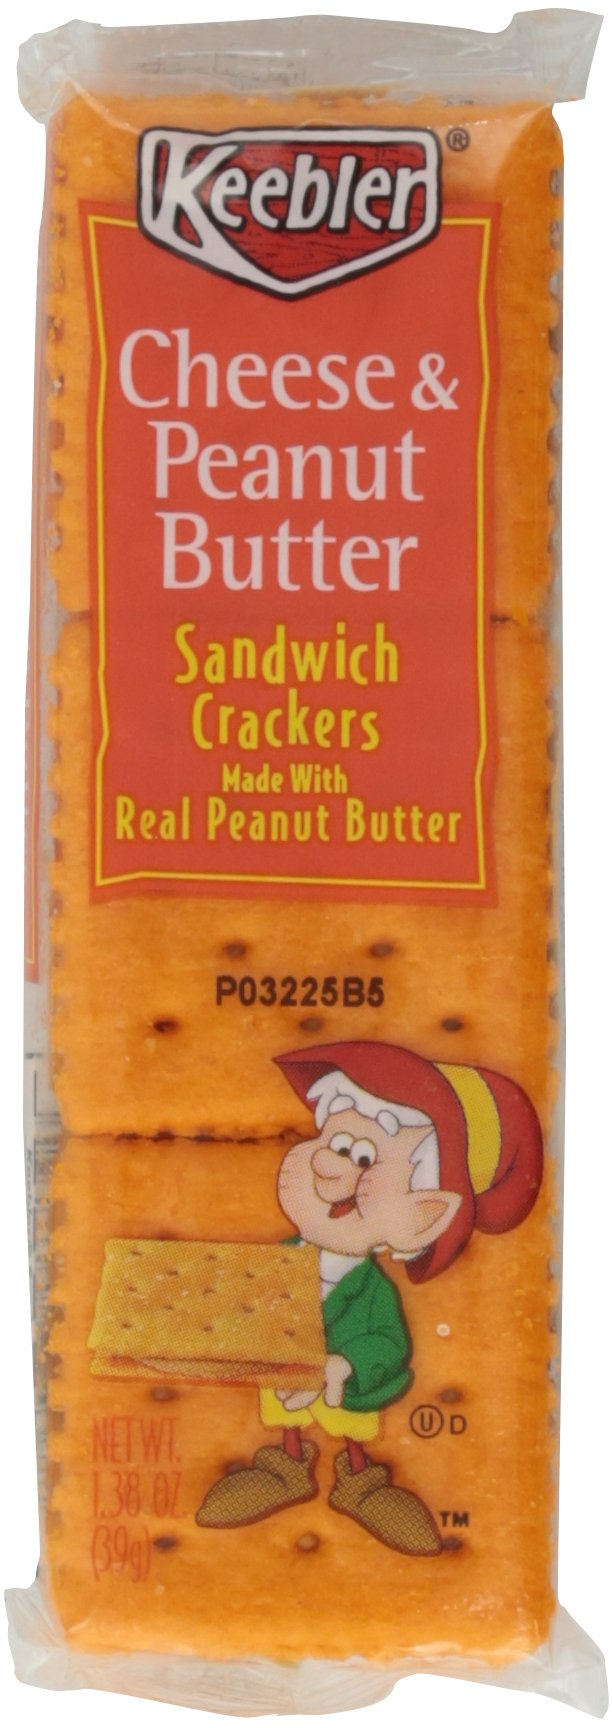 Keebler Sandwich Crackers, Cheese & Peanut Butter, 1.38 oz. 8-Count (Pack of 6)